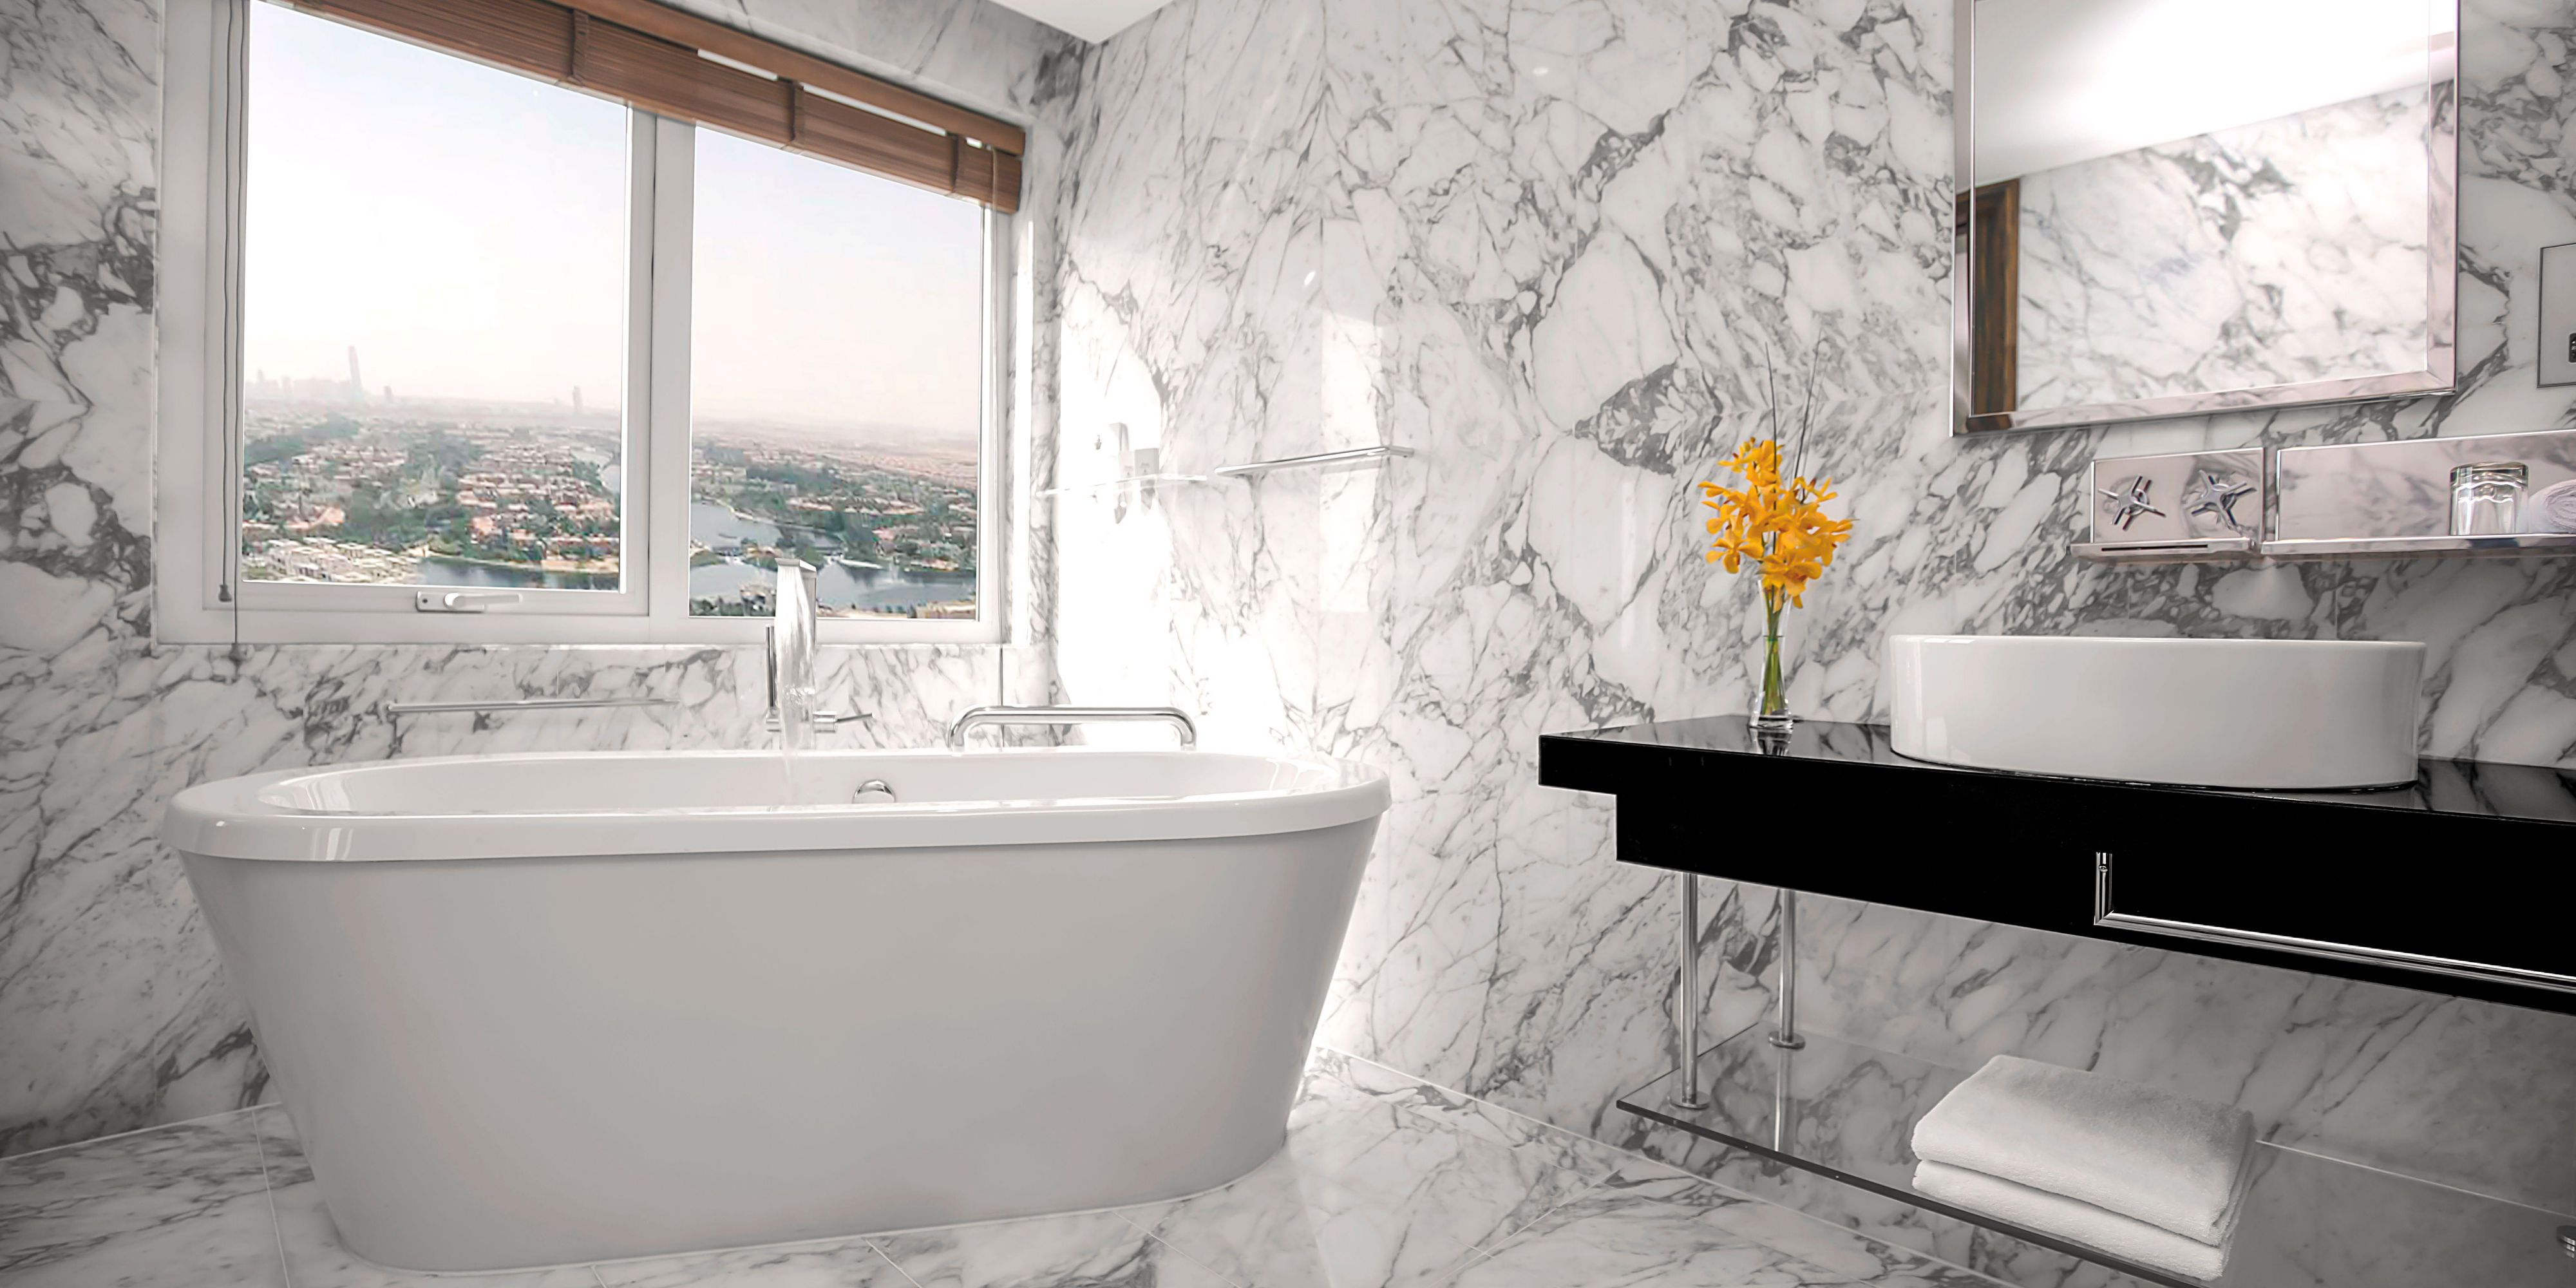 Our stand-alone bathtub awaits you in our Deluxe Suite